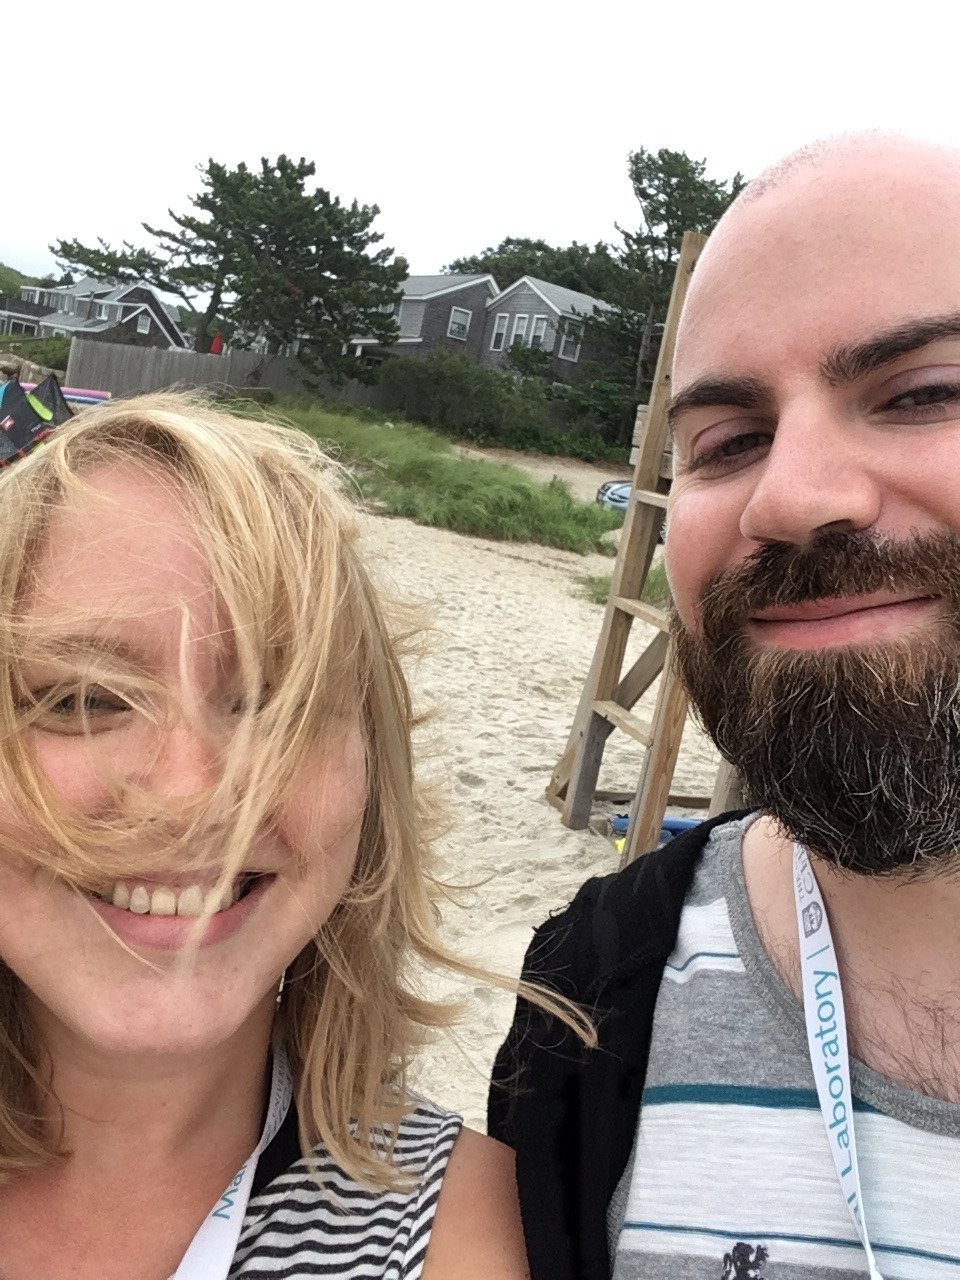 #MolEvol2017 TAs cannot be stopped from swimming, not even in the rain. #NerdBeachParty @con_meehan https://t.co/RrFi2AOsft